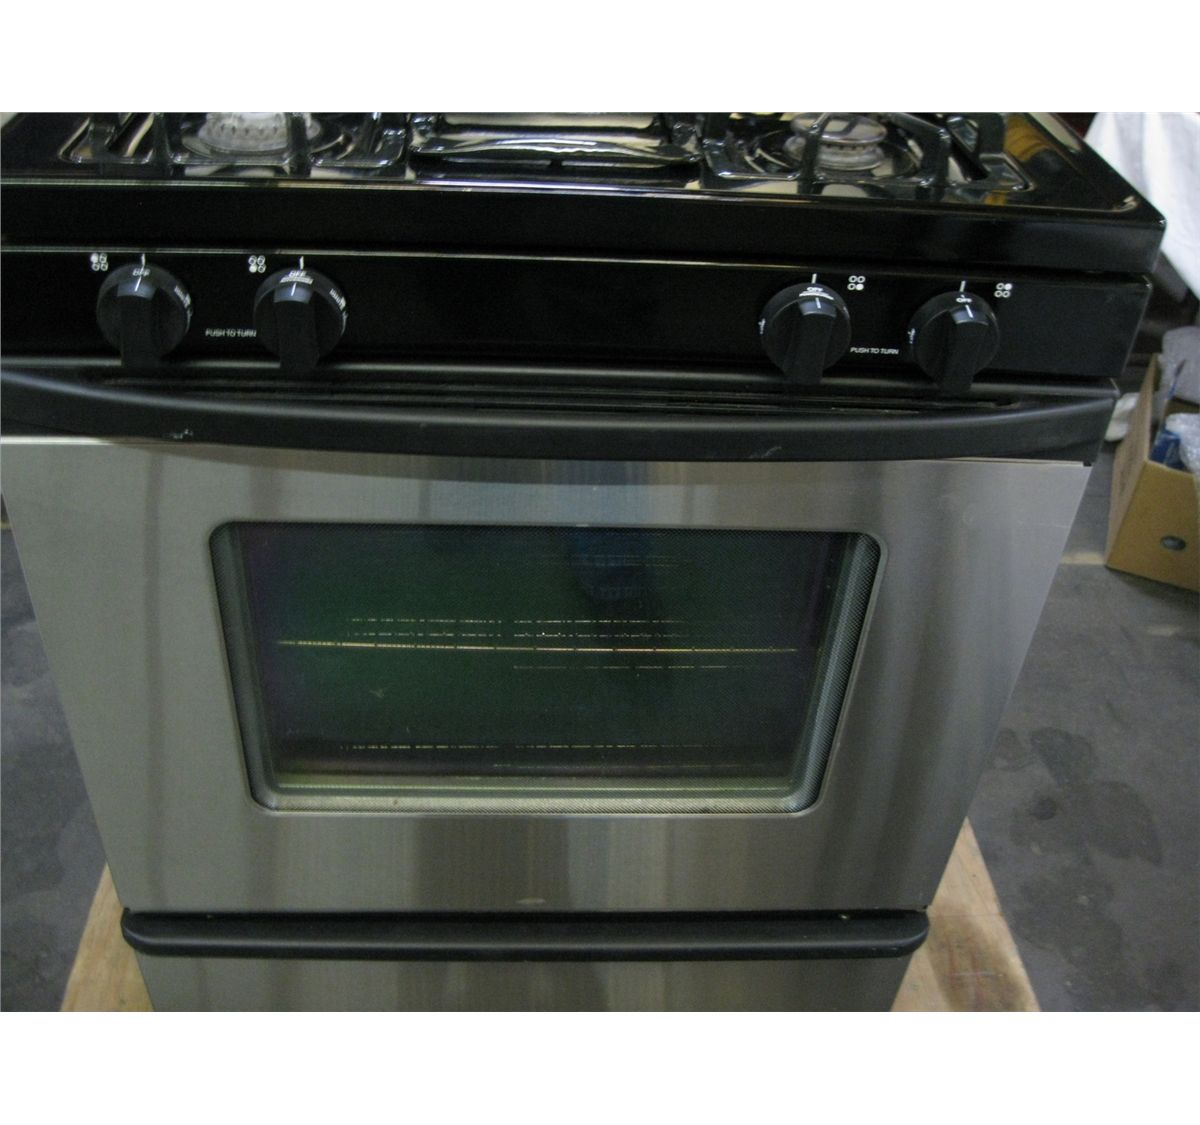 Innovative Image Whirl G Accubake Gas Whirl G Accubake Gas Whirl Accubake Oven Error Codes Whirl Accubake Oven Won T Ignite houzz-03 Whirlpool Accubake Oven